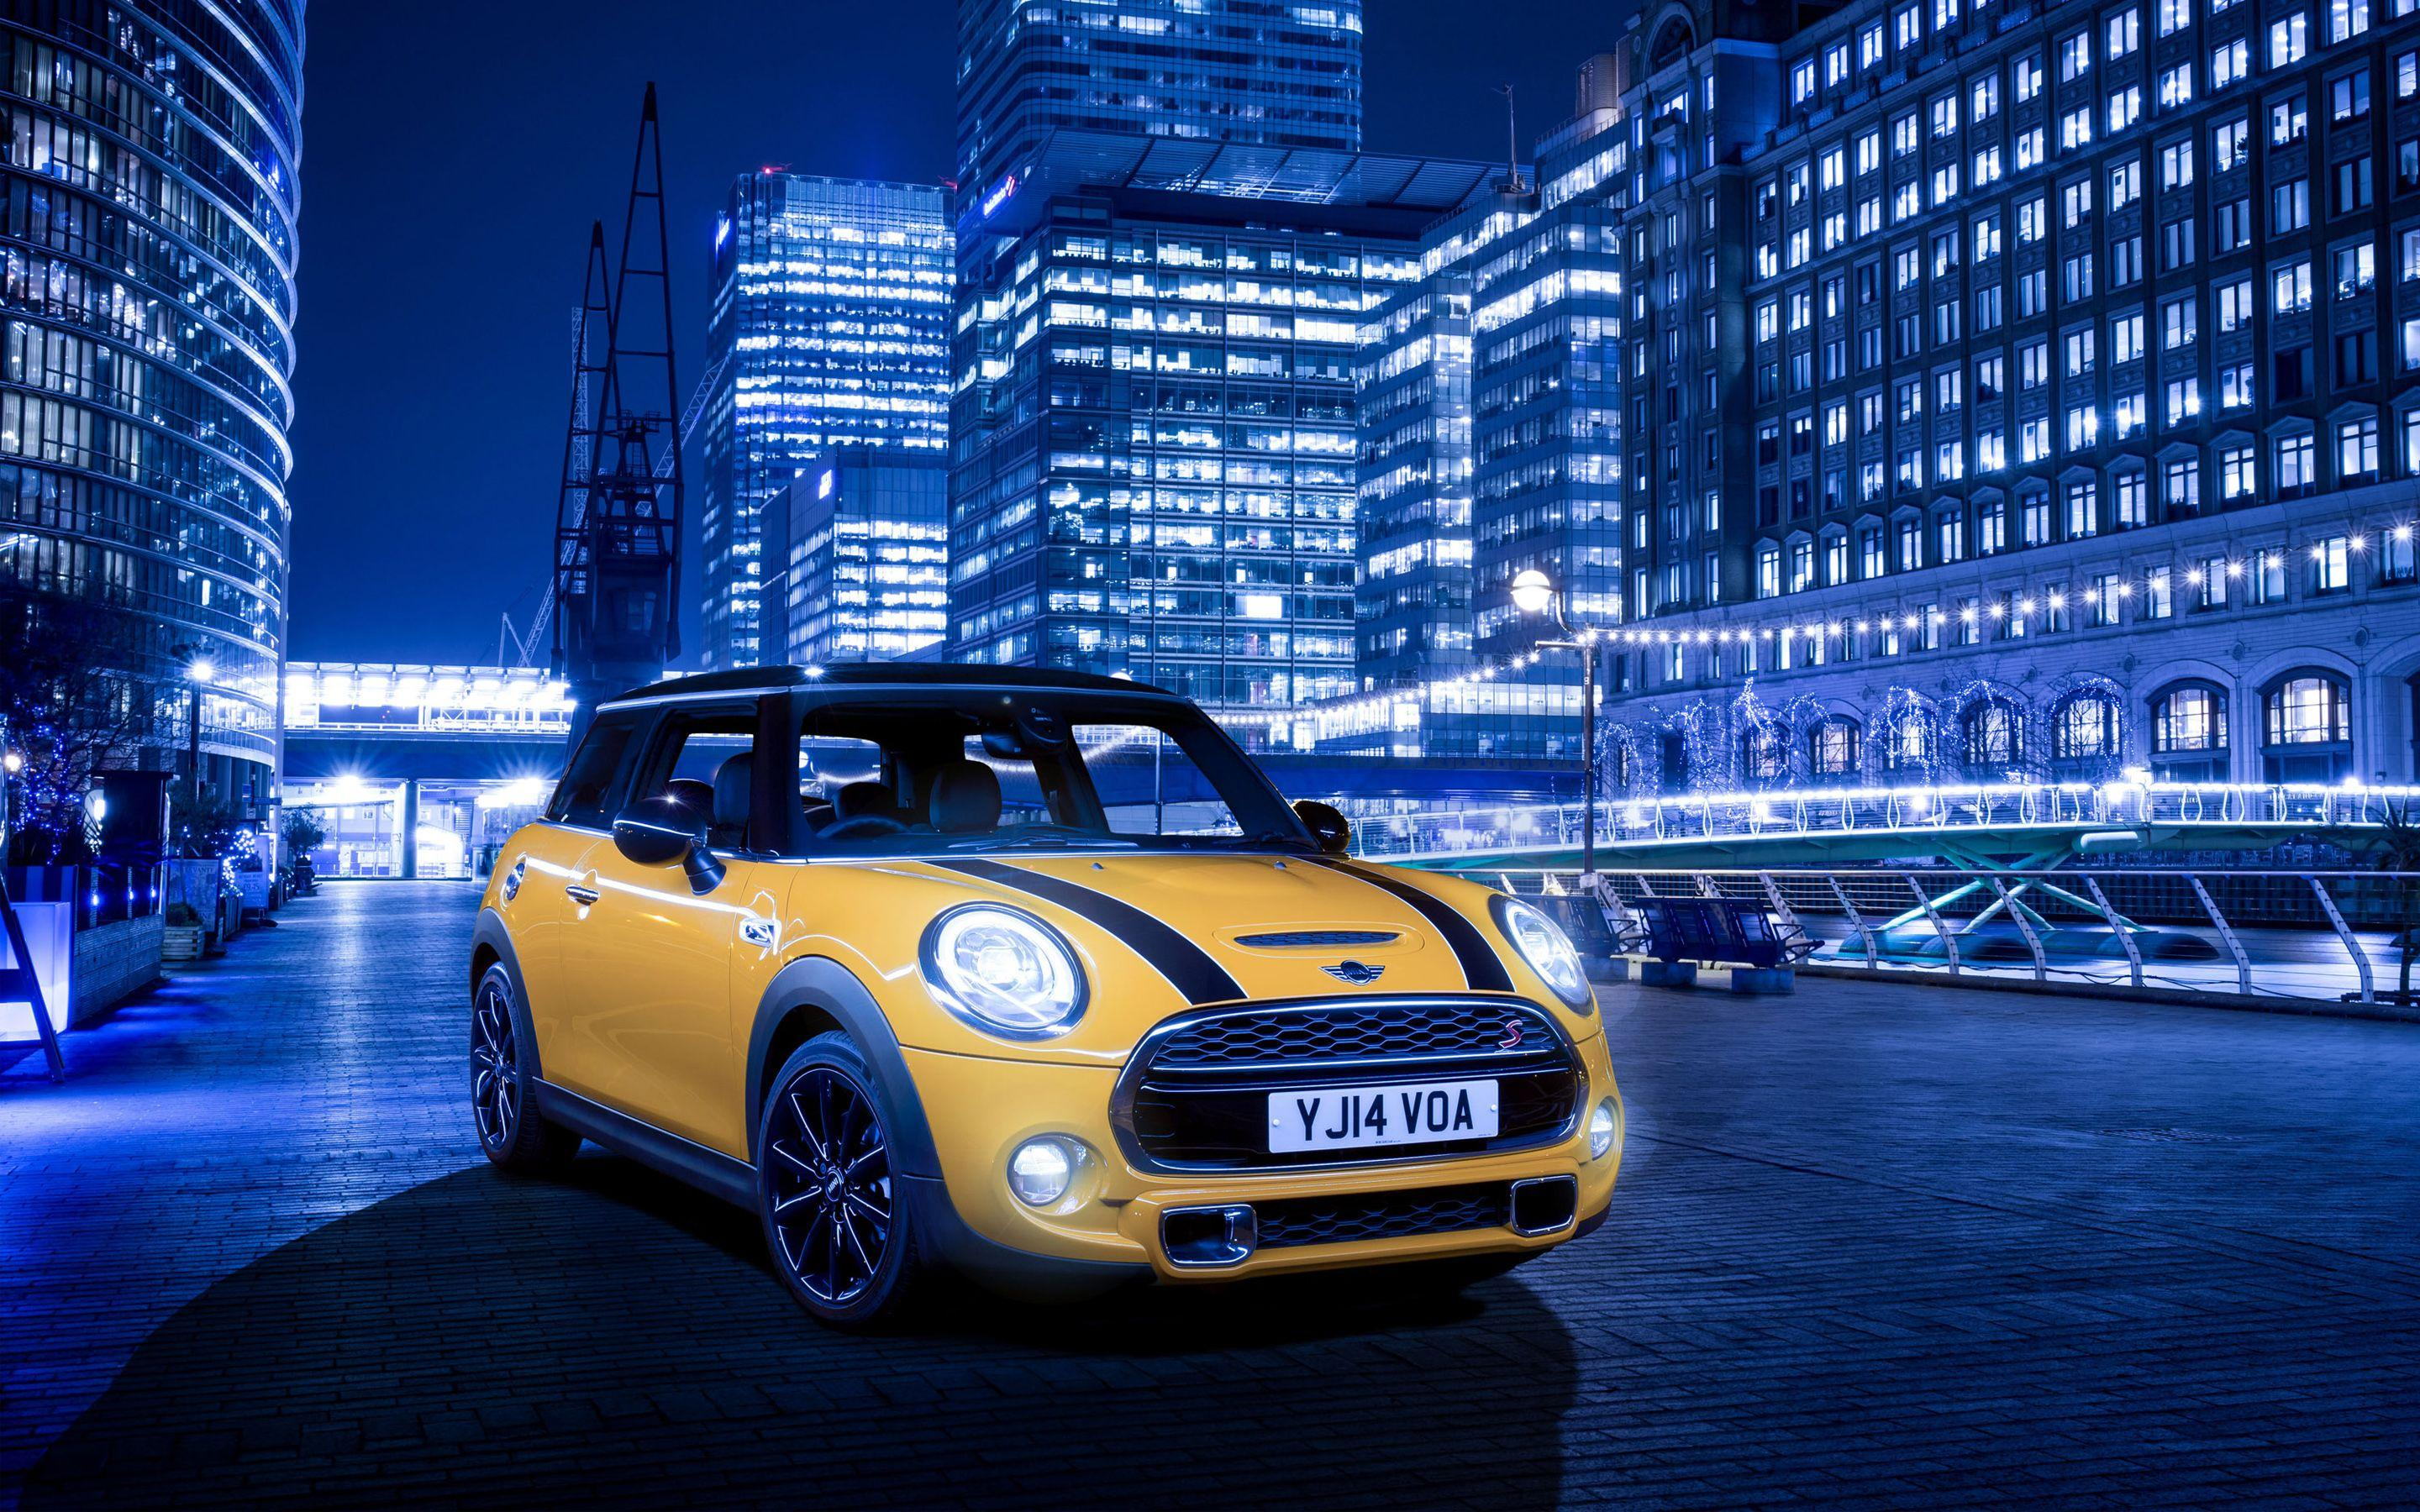 Mini Cooper S Wallpapers, QQ992 FHDQ Wallpapers For Desktop And Mobile